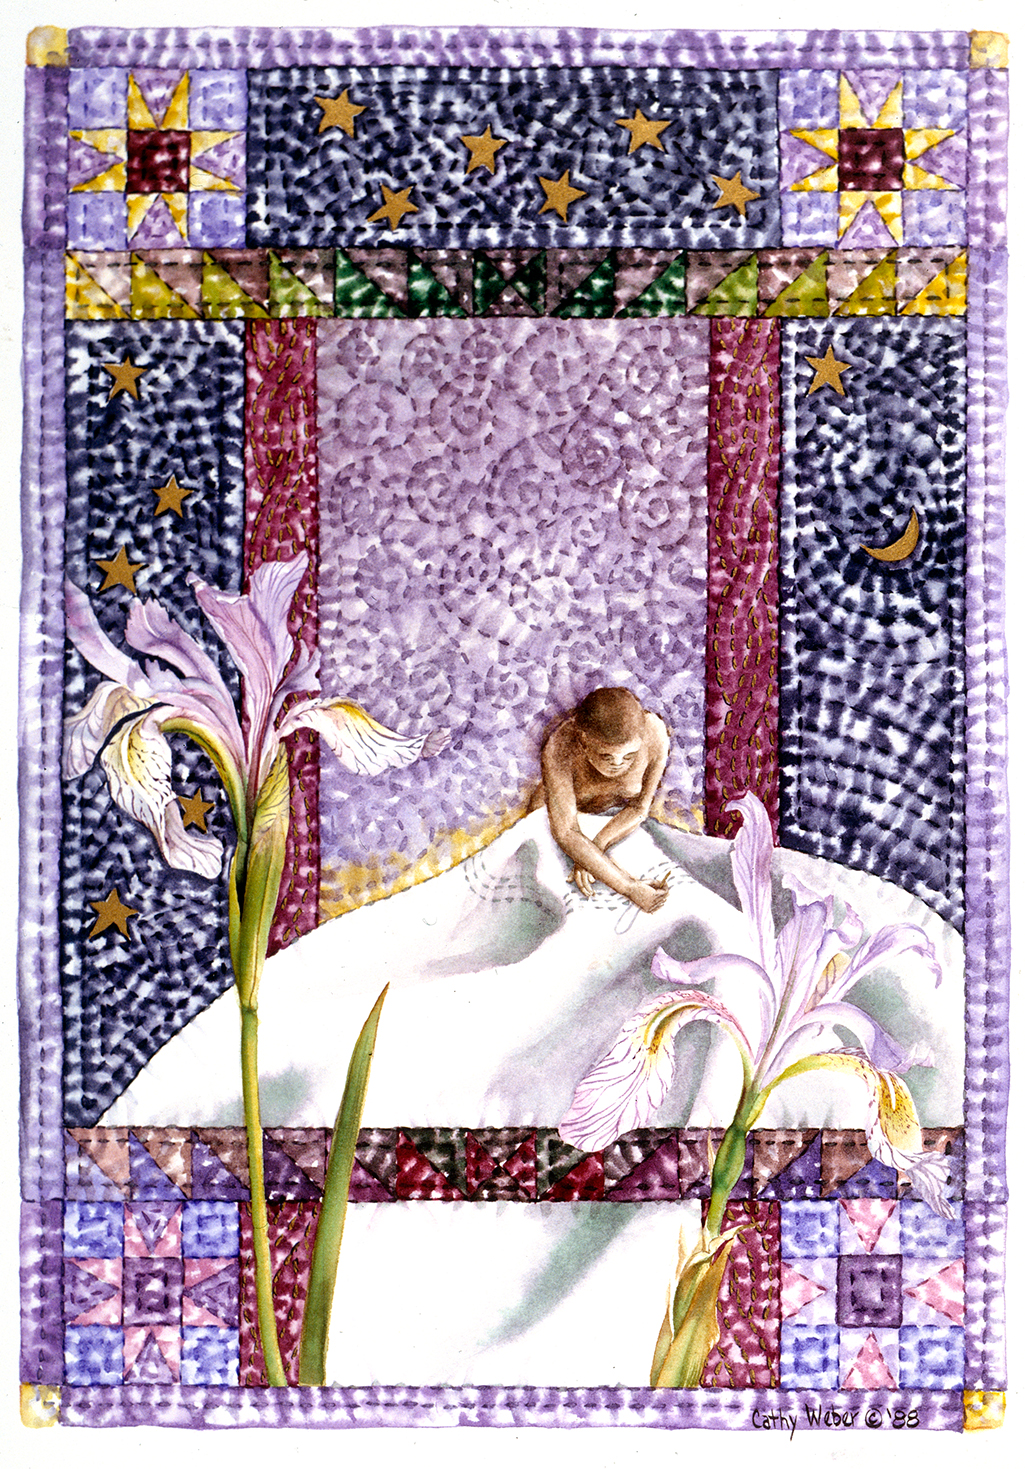 cathy weber - art - holy card - holycard - quilt - watercolor - creation - stitcher - stitch - montana- iris - quilter